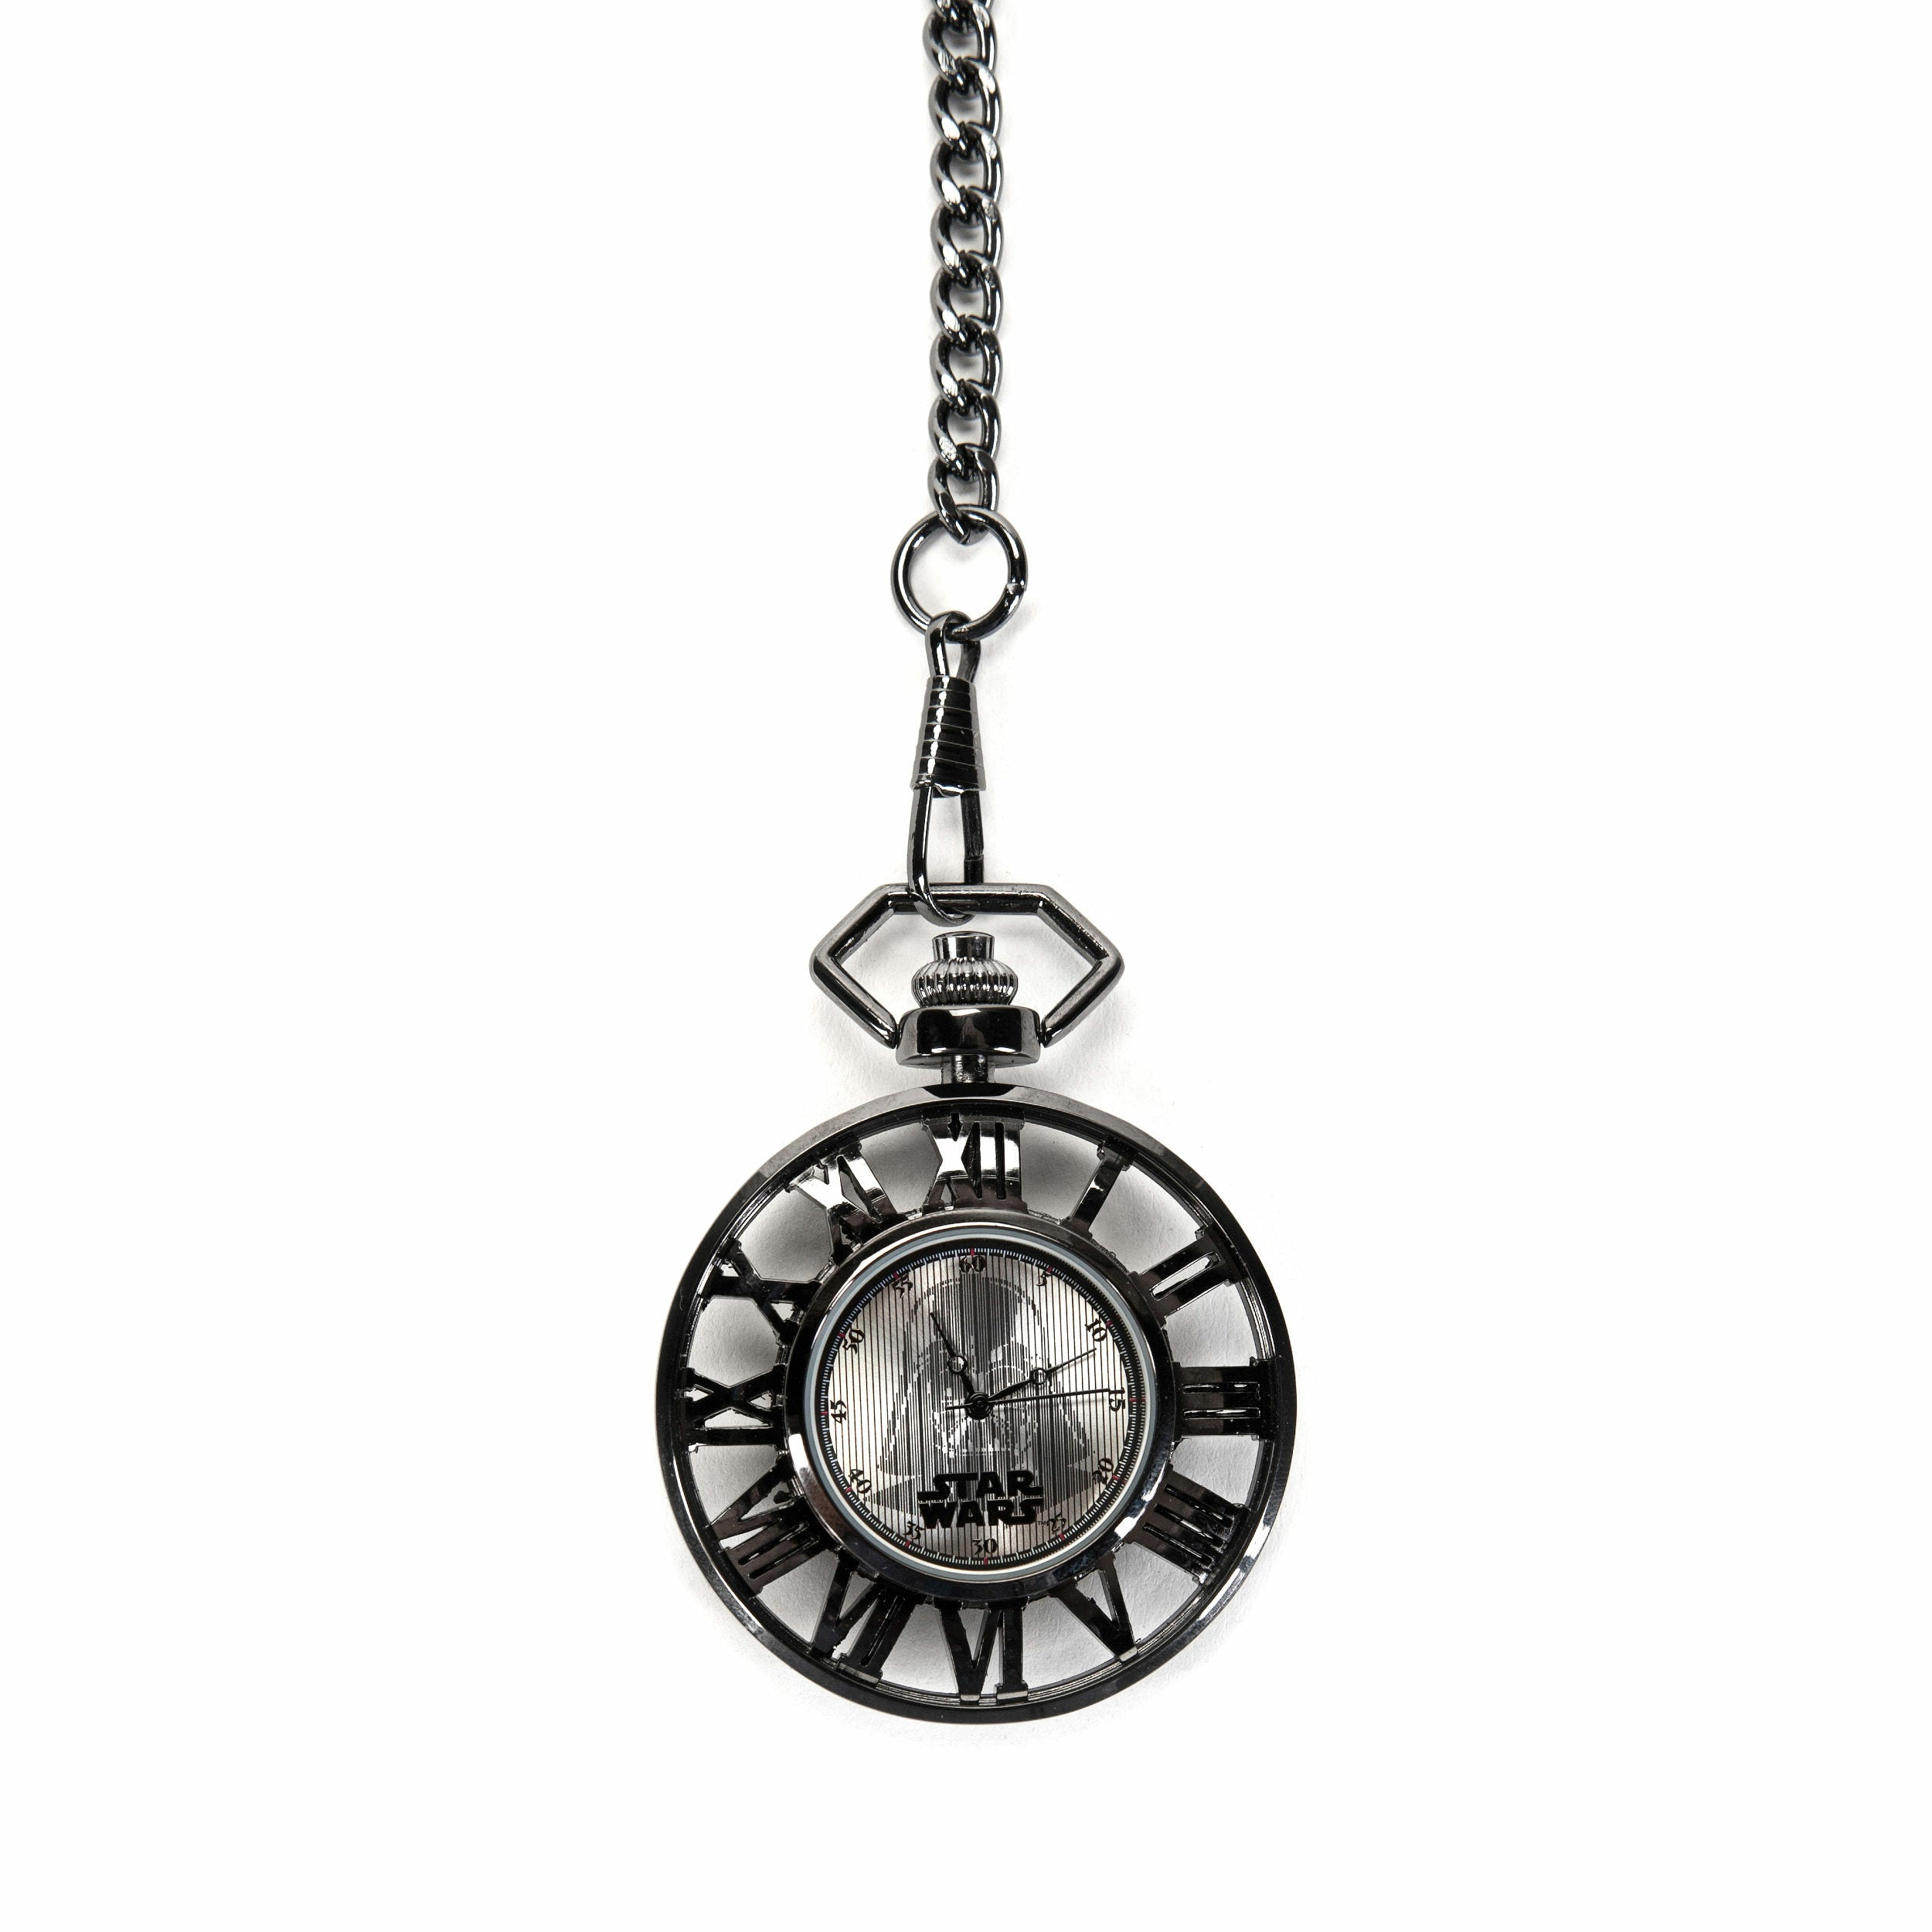 Star Wars Darth Vader Pocket Watch